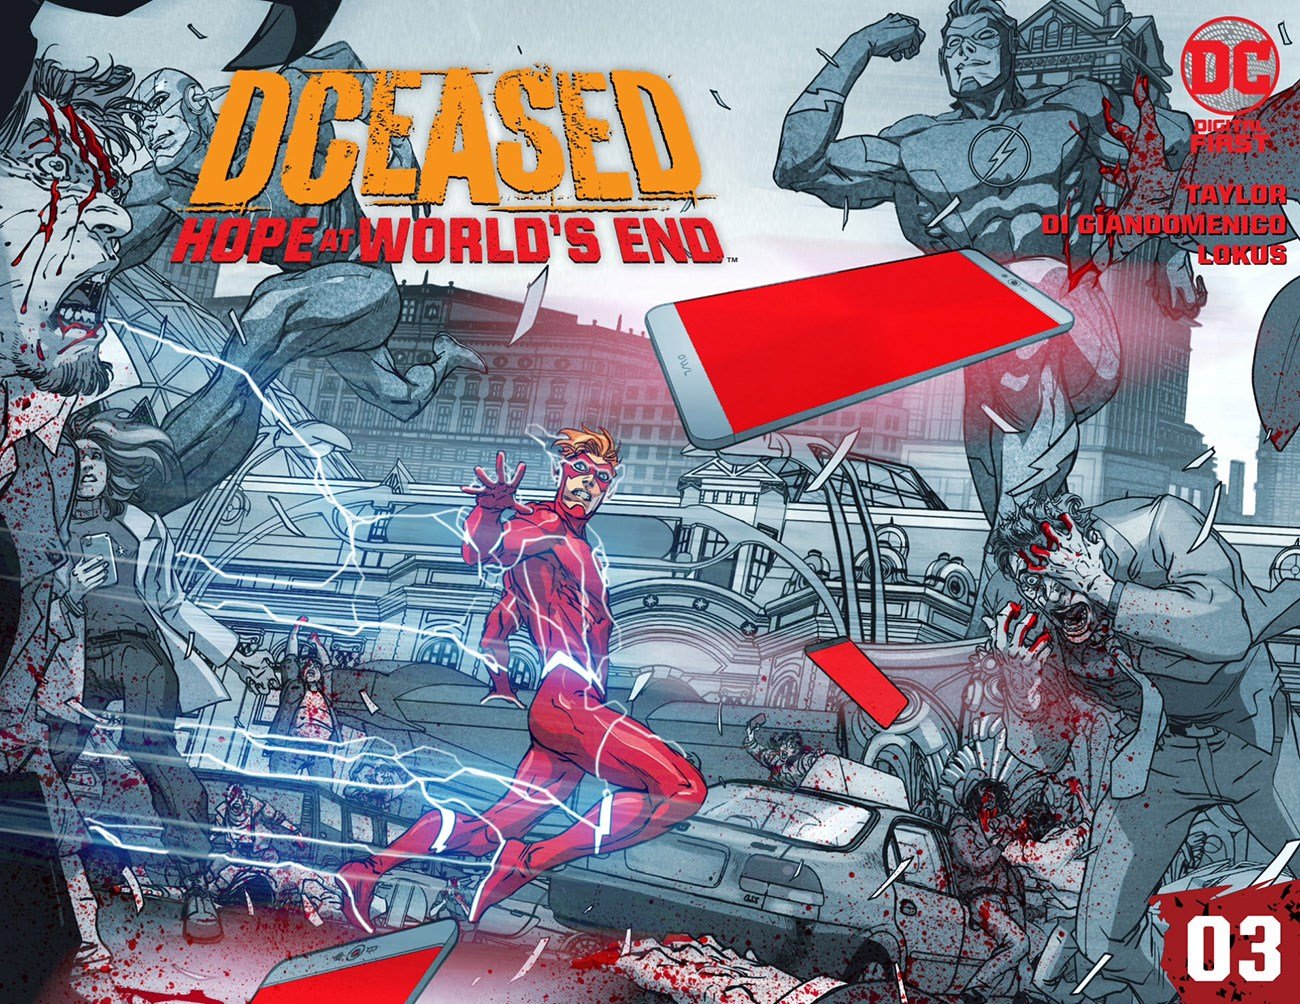 DCeased-Hope-At-World's-End-3-Cover.jpg